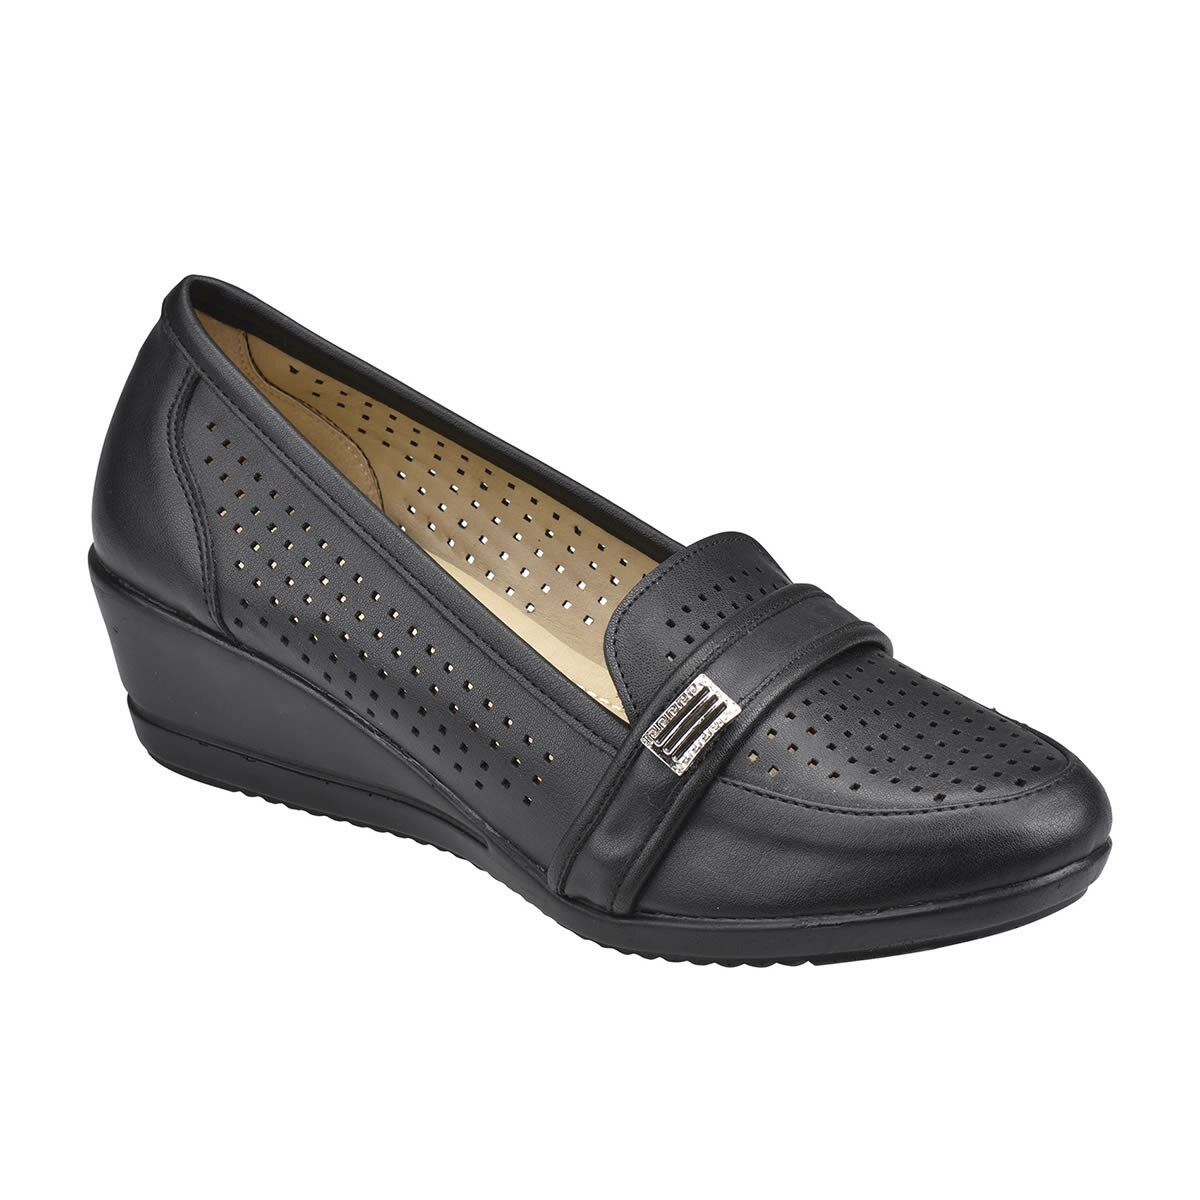 FLO 61.156461.Z Black Women Shoes Polaris